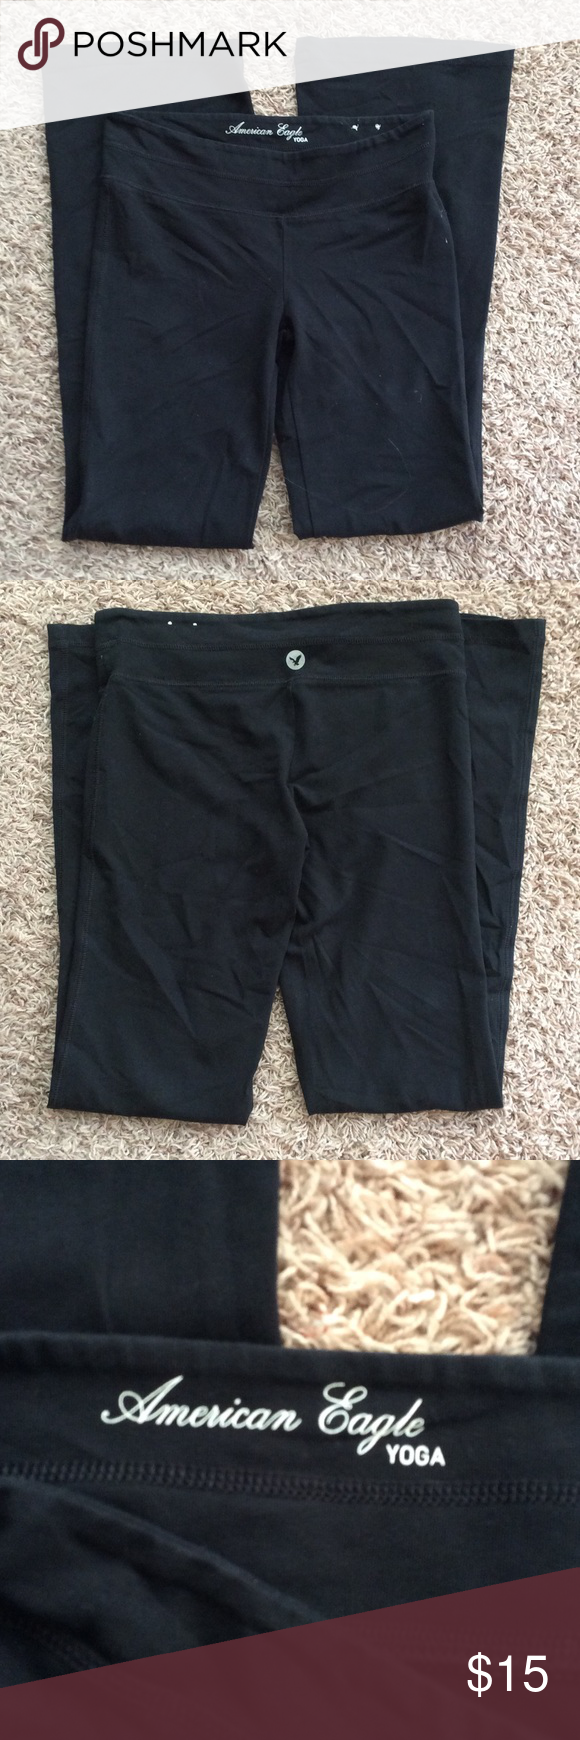 American Eagle Yoga Pants American Eagle Yoga Pants - Excellent condition, only worn a few times. American Eagle Outfitters Pants Leggings